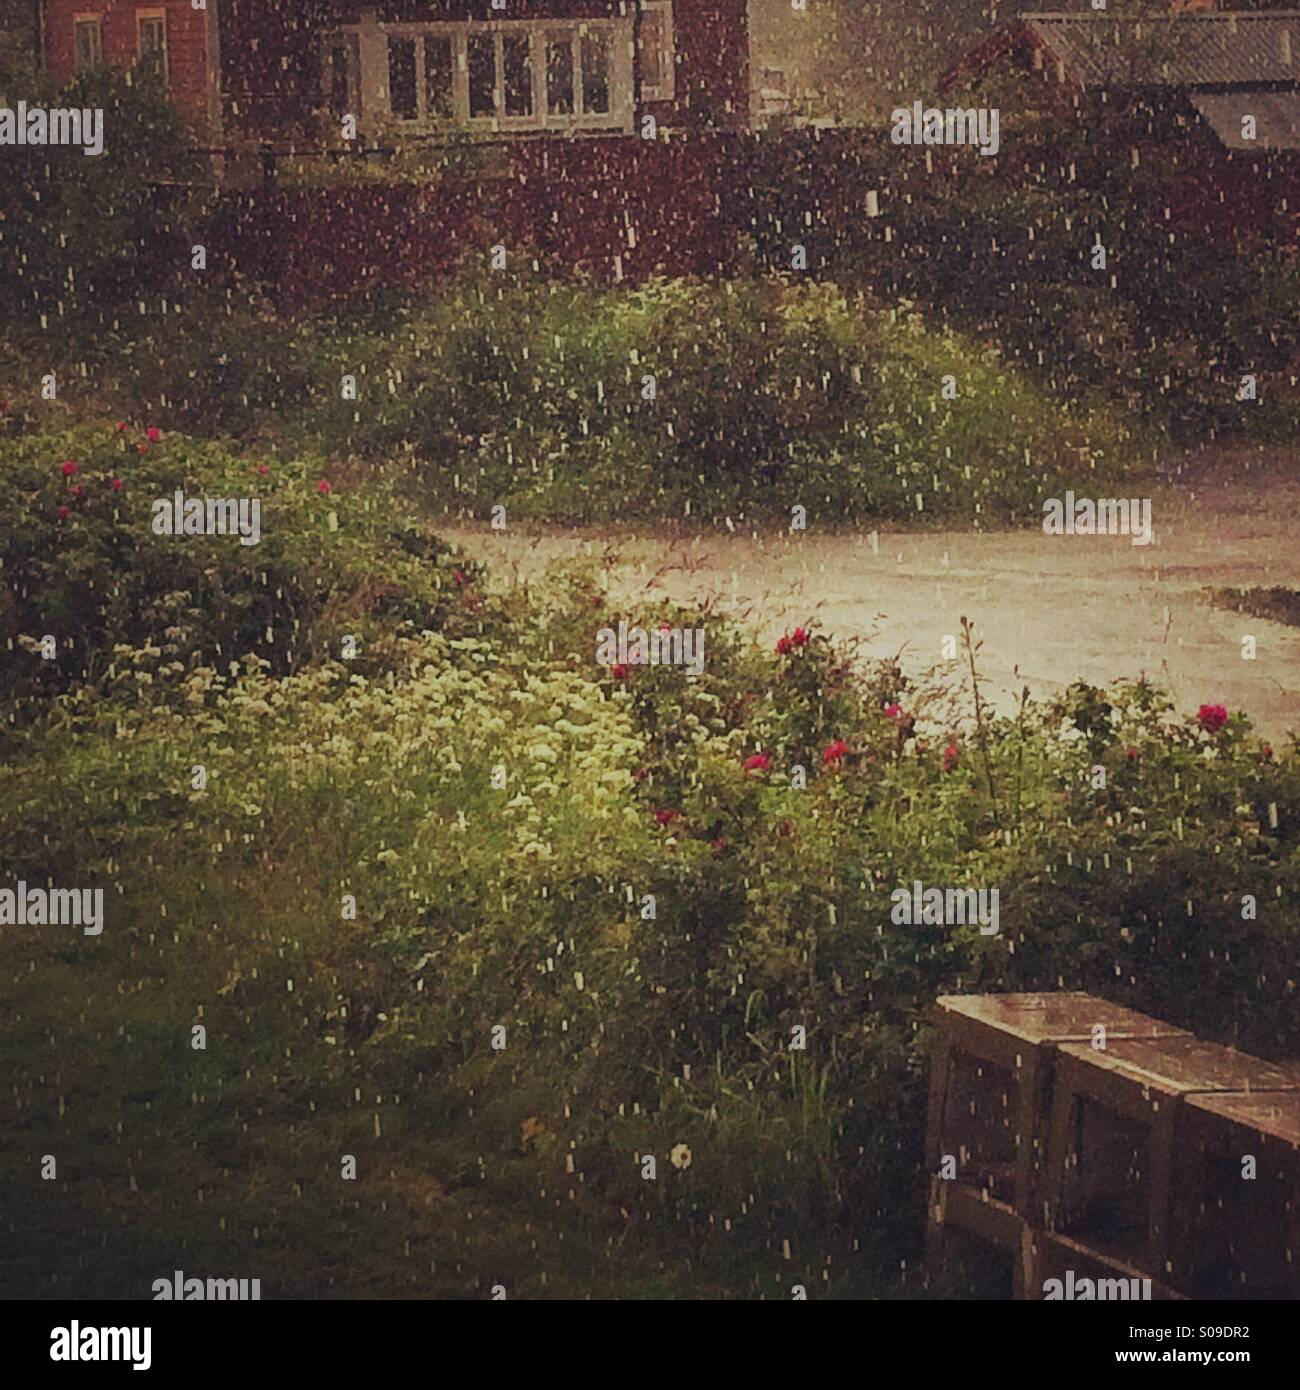 Hail in the middle of july in Sweden - Stock Image